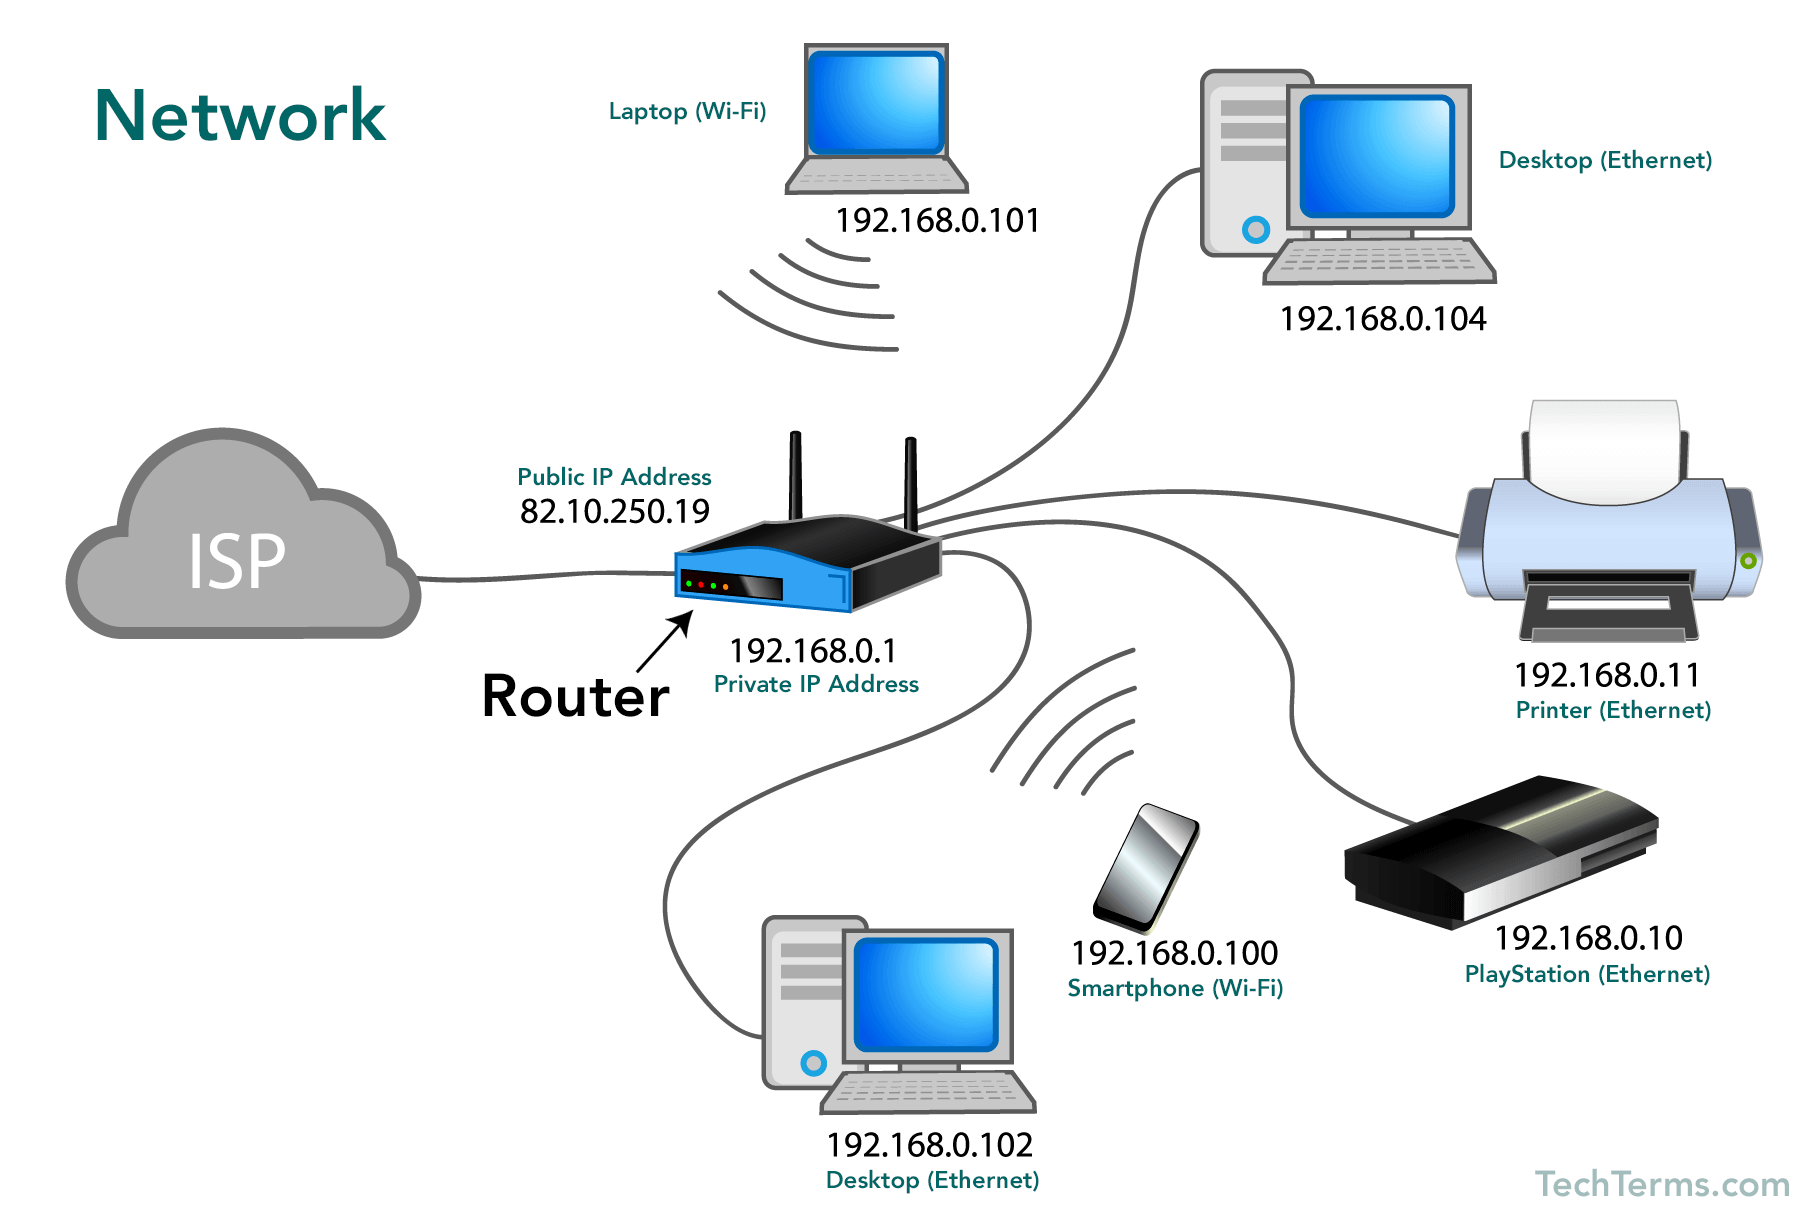 hight resolution of what devices are on your computer network who is your isp internet service provider are all your devices wireless or are some connected by an ethernet